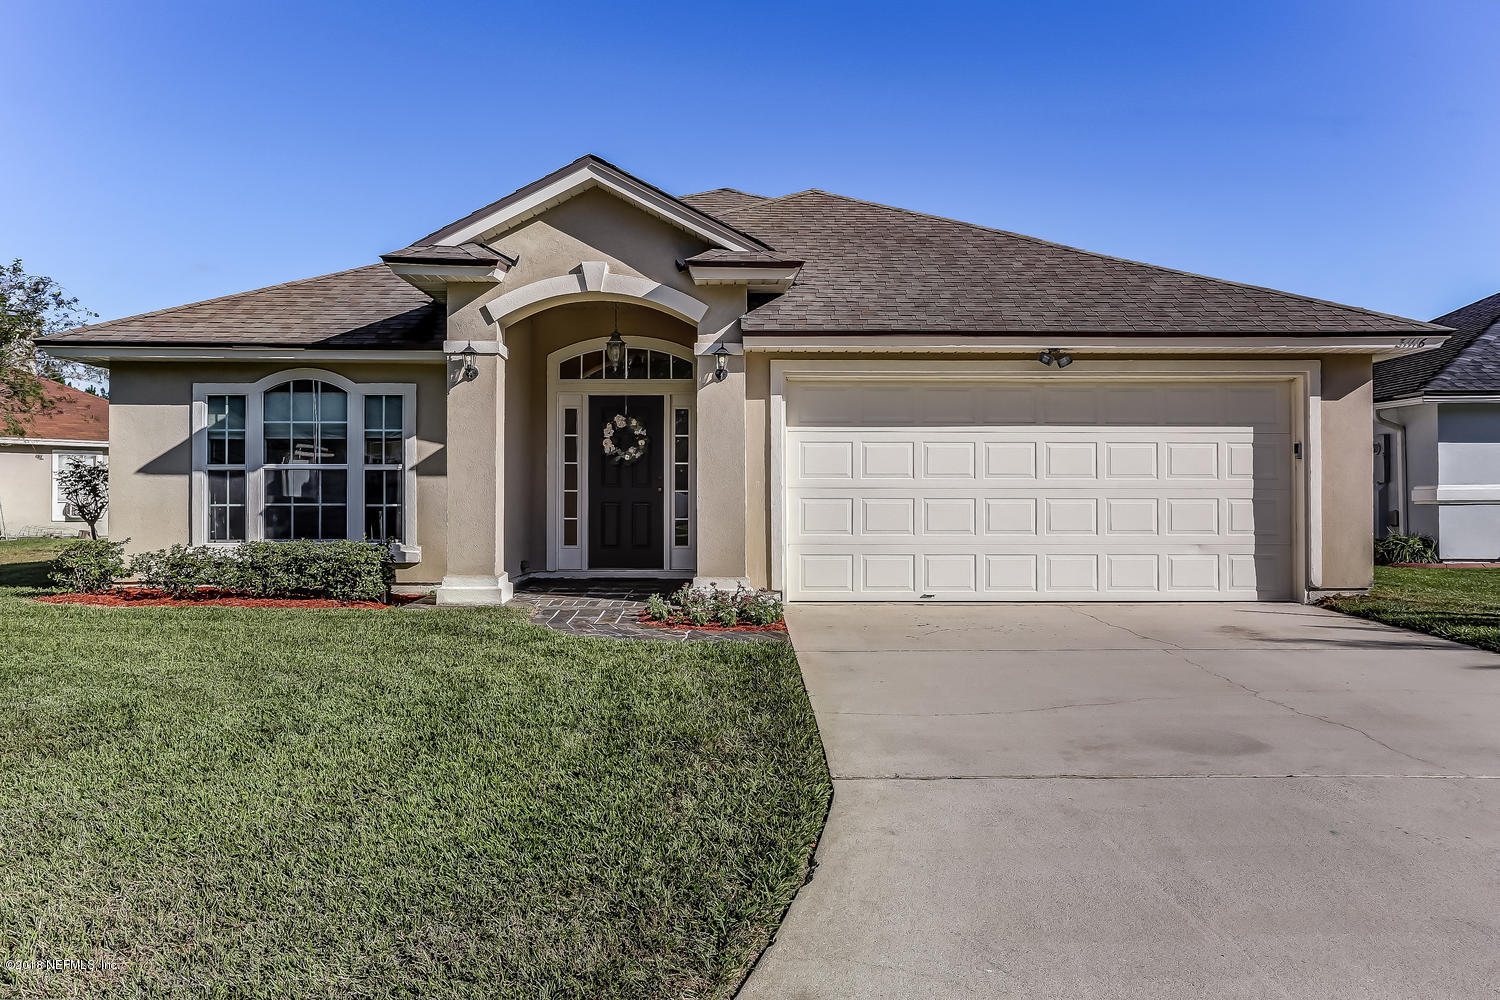 31116 GRASSY PARKE, FERNANDINA BEACH, FLORIDA 32034, 3 Bedrooms Bedrooms, ,2 BathroomsBathrooms,Residential - single family,For sale,GRASSY PARKE,965113